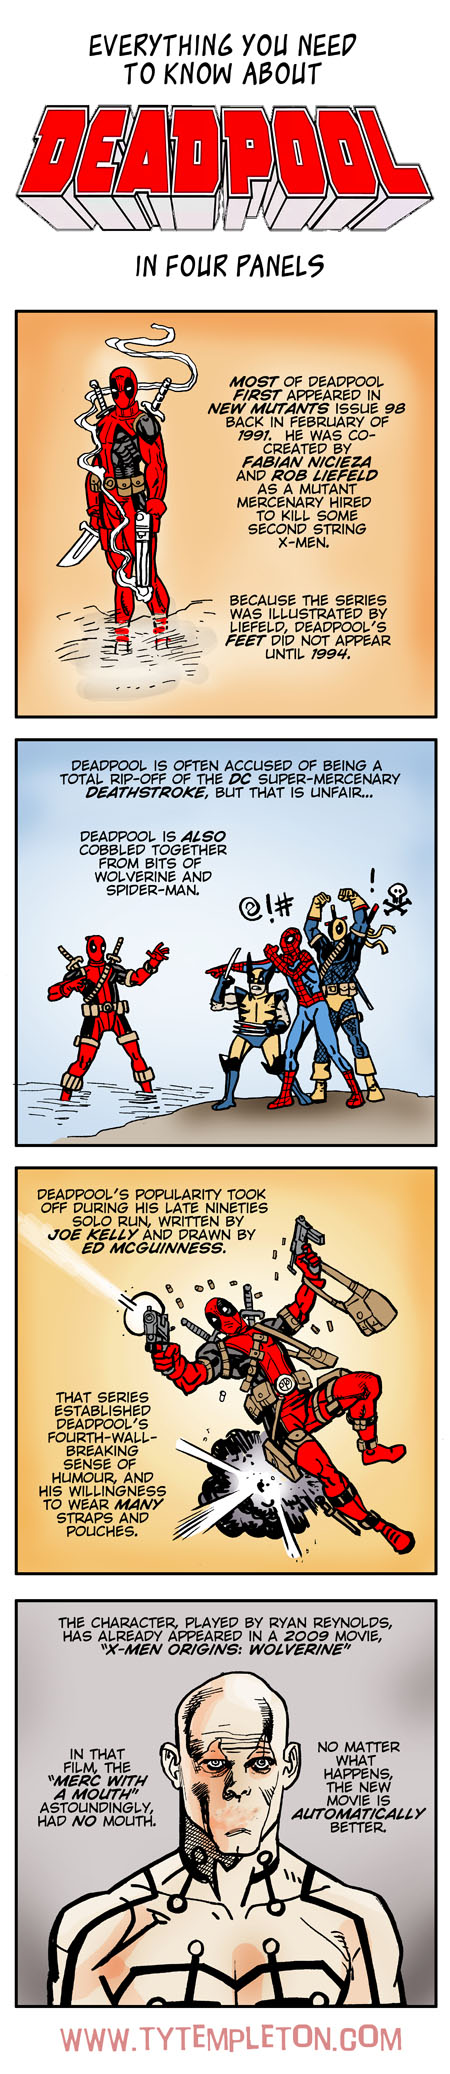 deadpool four panels websize